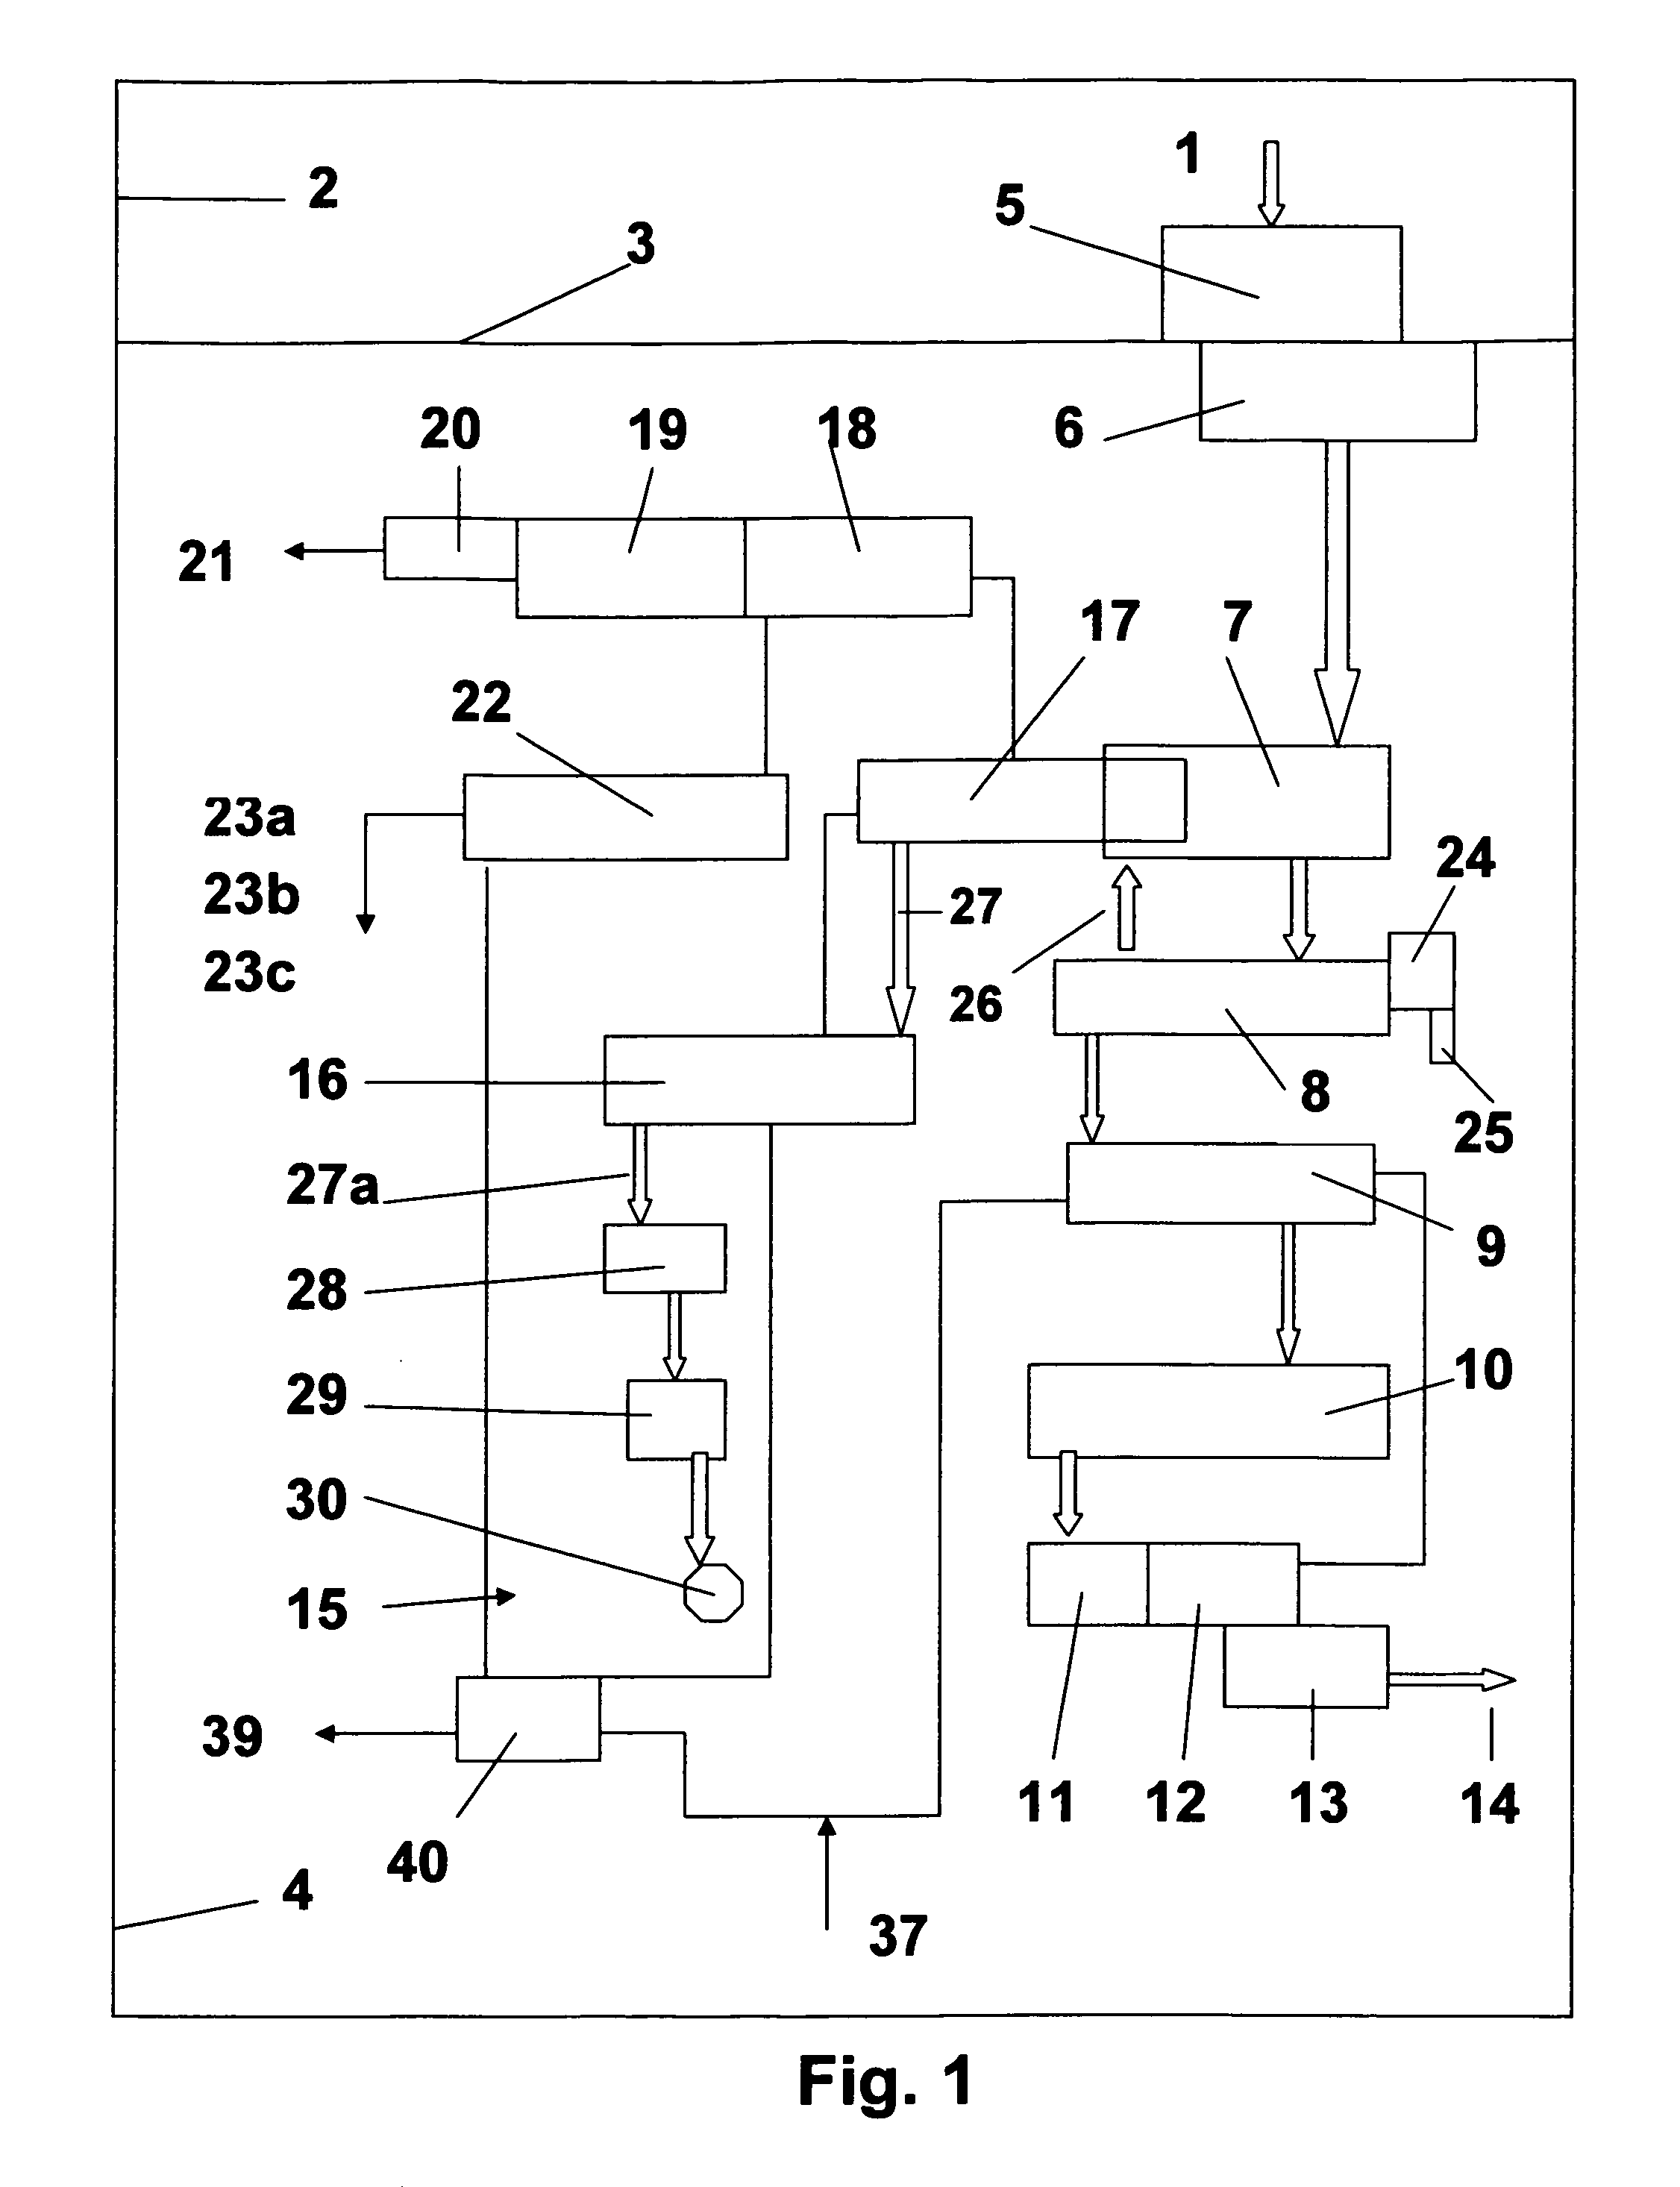 WO2012095119A2 METHOD AND SYSTEM FOR THE RECOVERY OF ENERGY FROM BIOMASS AND COMBUSTIBLE WASTE